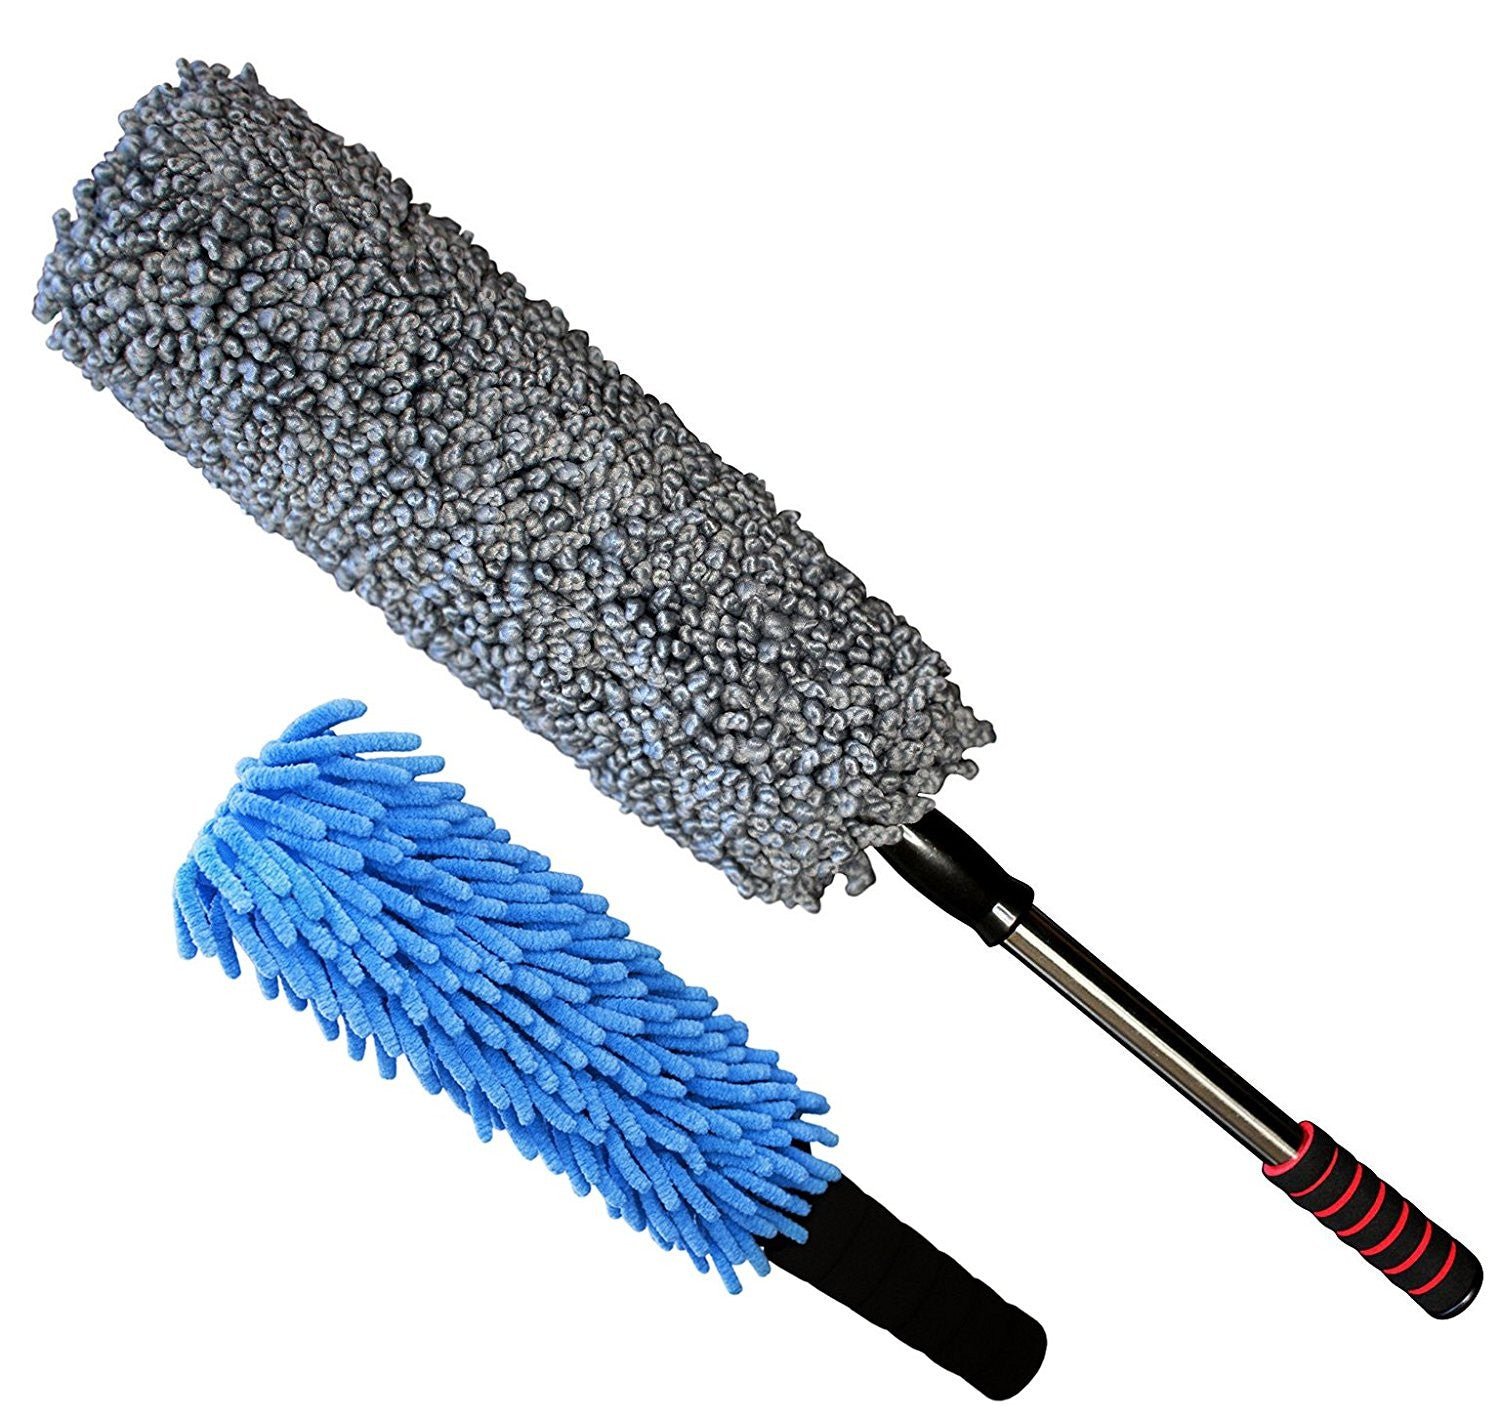 Ultra Premium 2 Piece Car Duster Set - Dash Duster & Car Duster